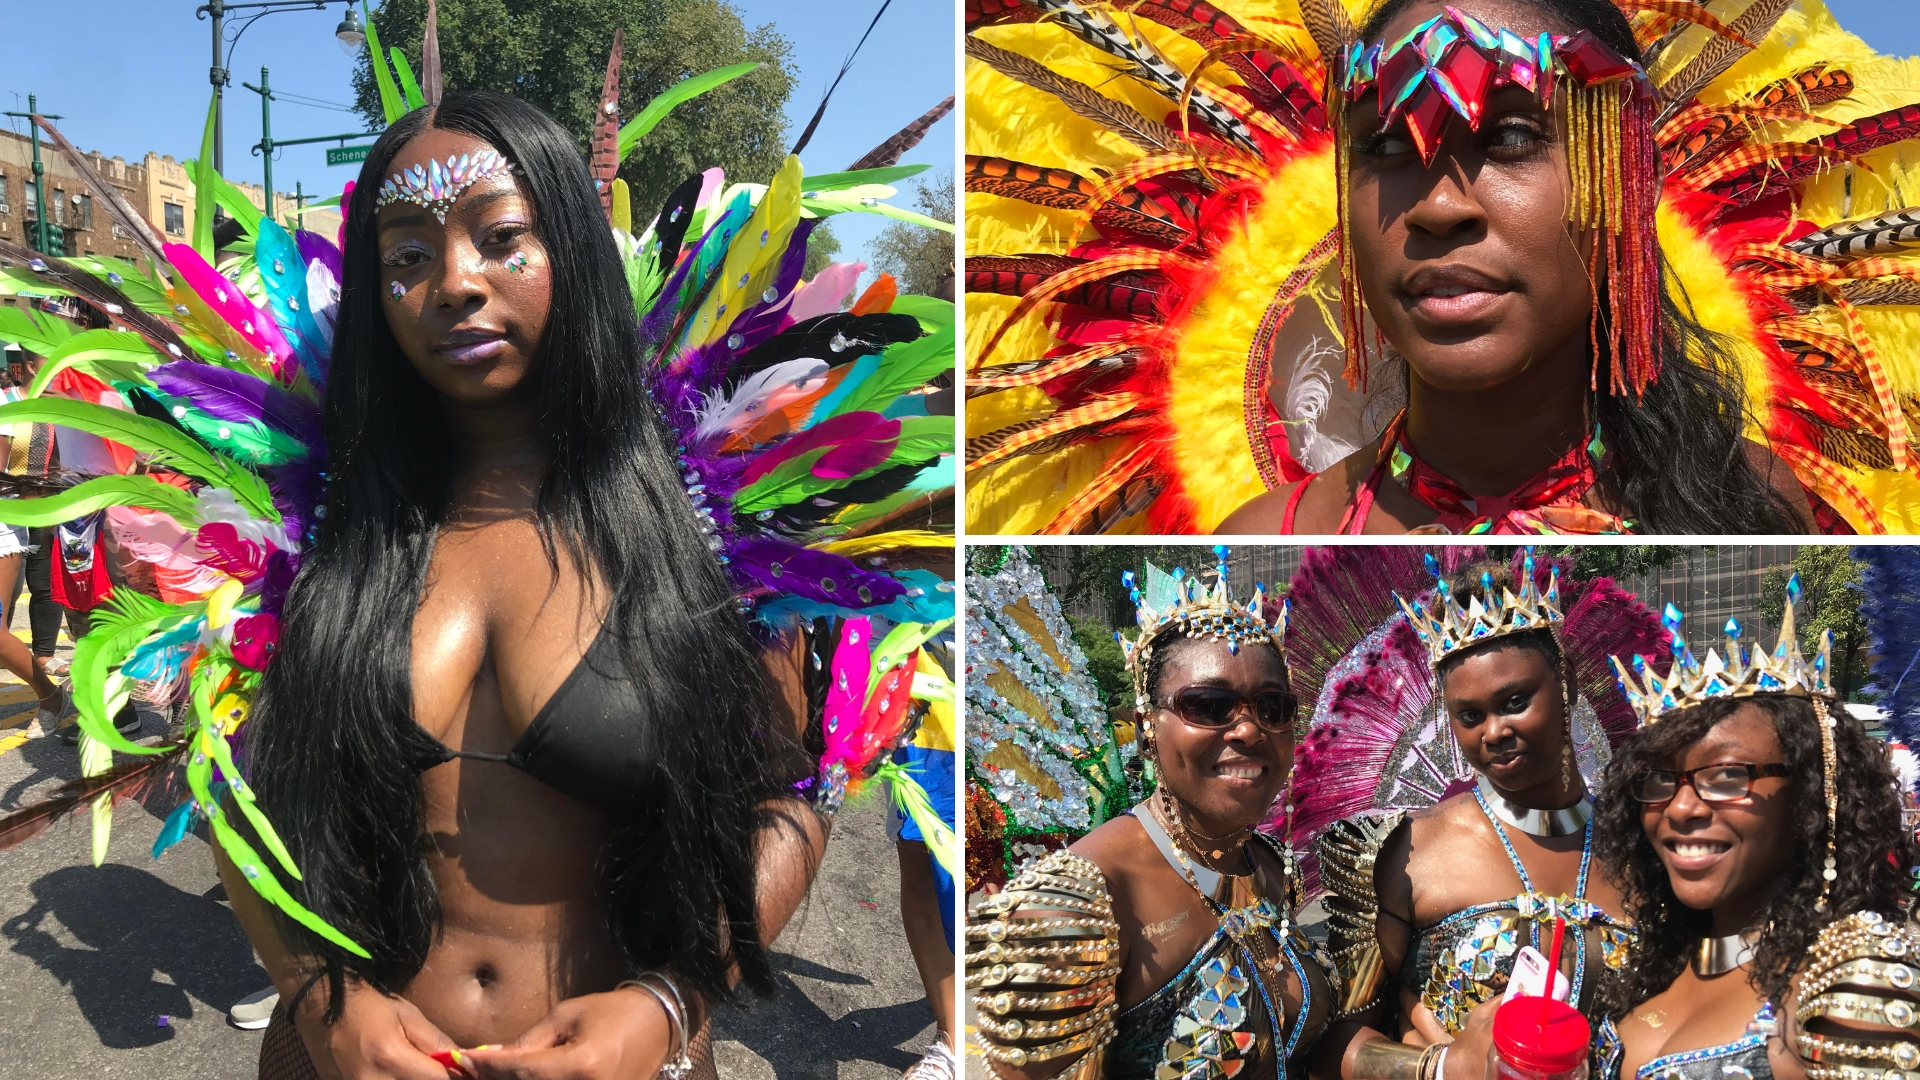 PHOTOS: Wave of Caribbean pride on display at West Indian DayParade